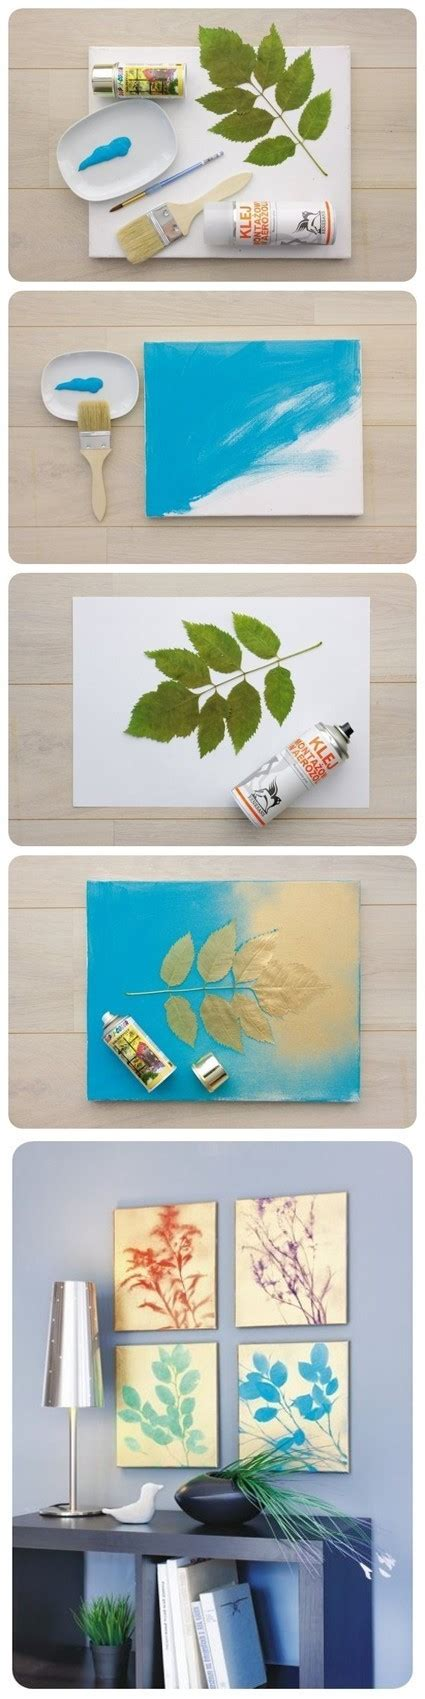 spray painting diy bedroom wall decorating ideas decorate with picture